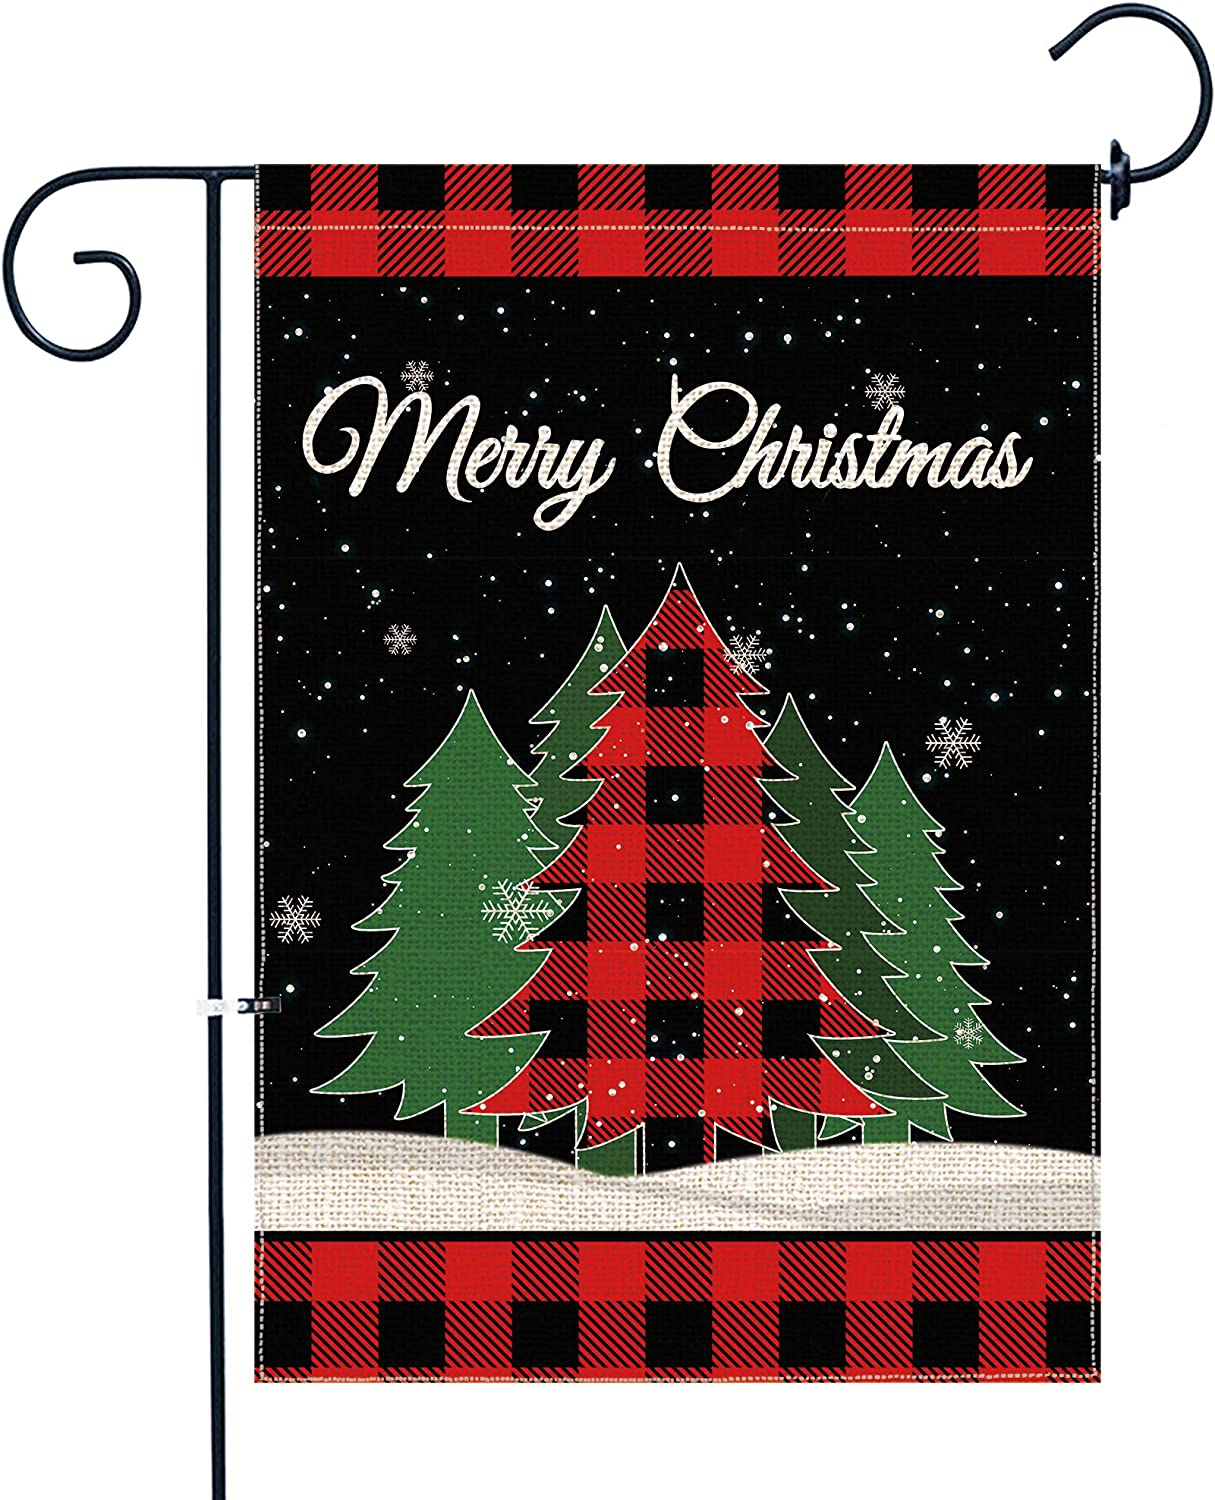 pinata Christmas Tree Garden Flag 12 X 18 Inch Double Sided Small Winter Garden Flag Red Buffalo Plaid Merry Christmas Banner Decorative Yard Flag Burlap Seasonal Cute Holiday Flag for Outside